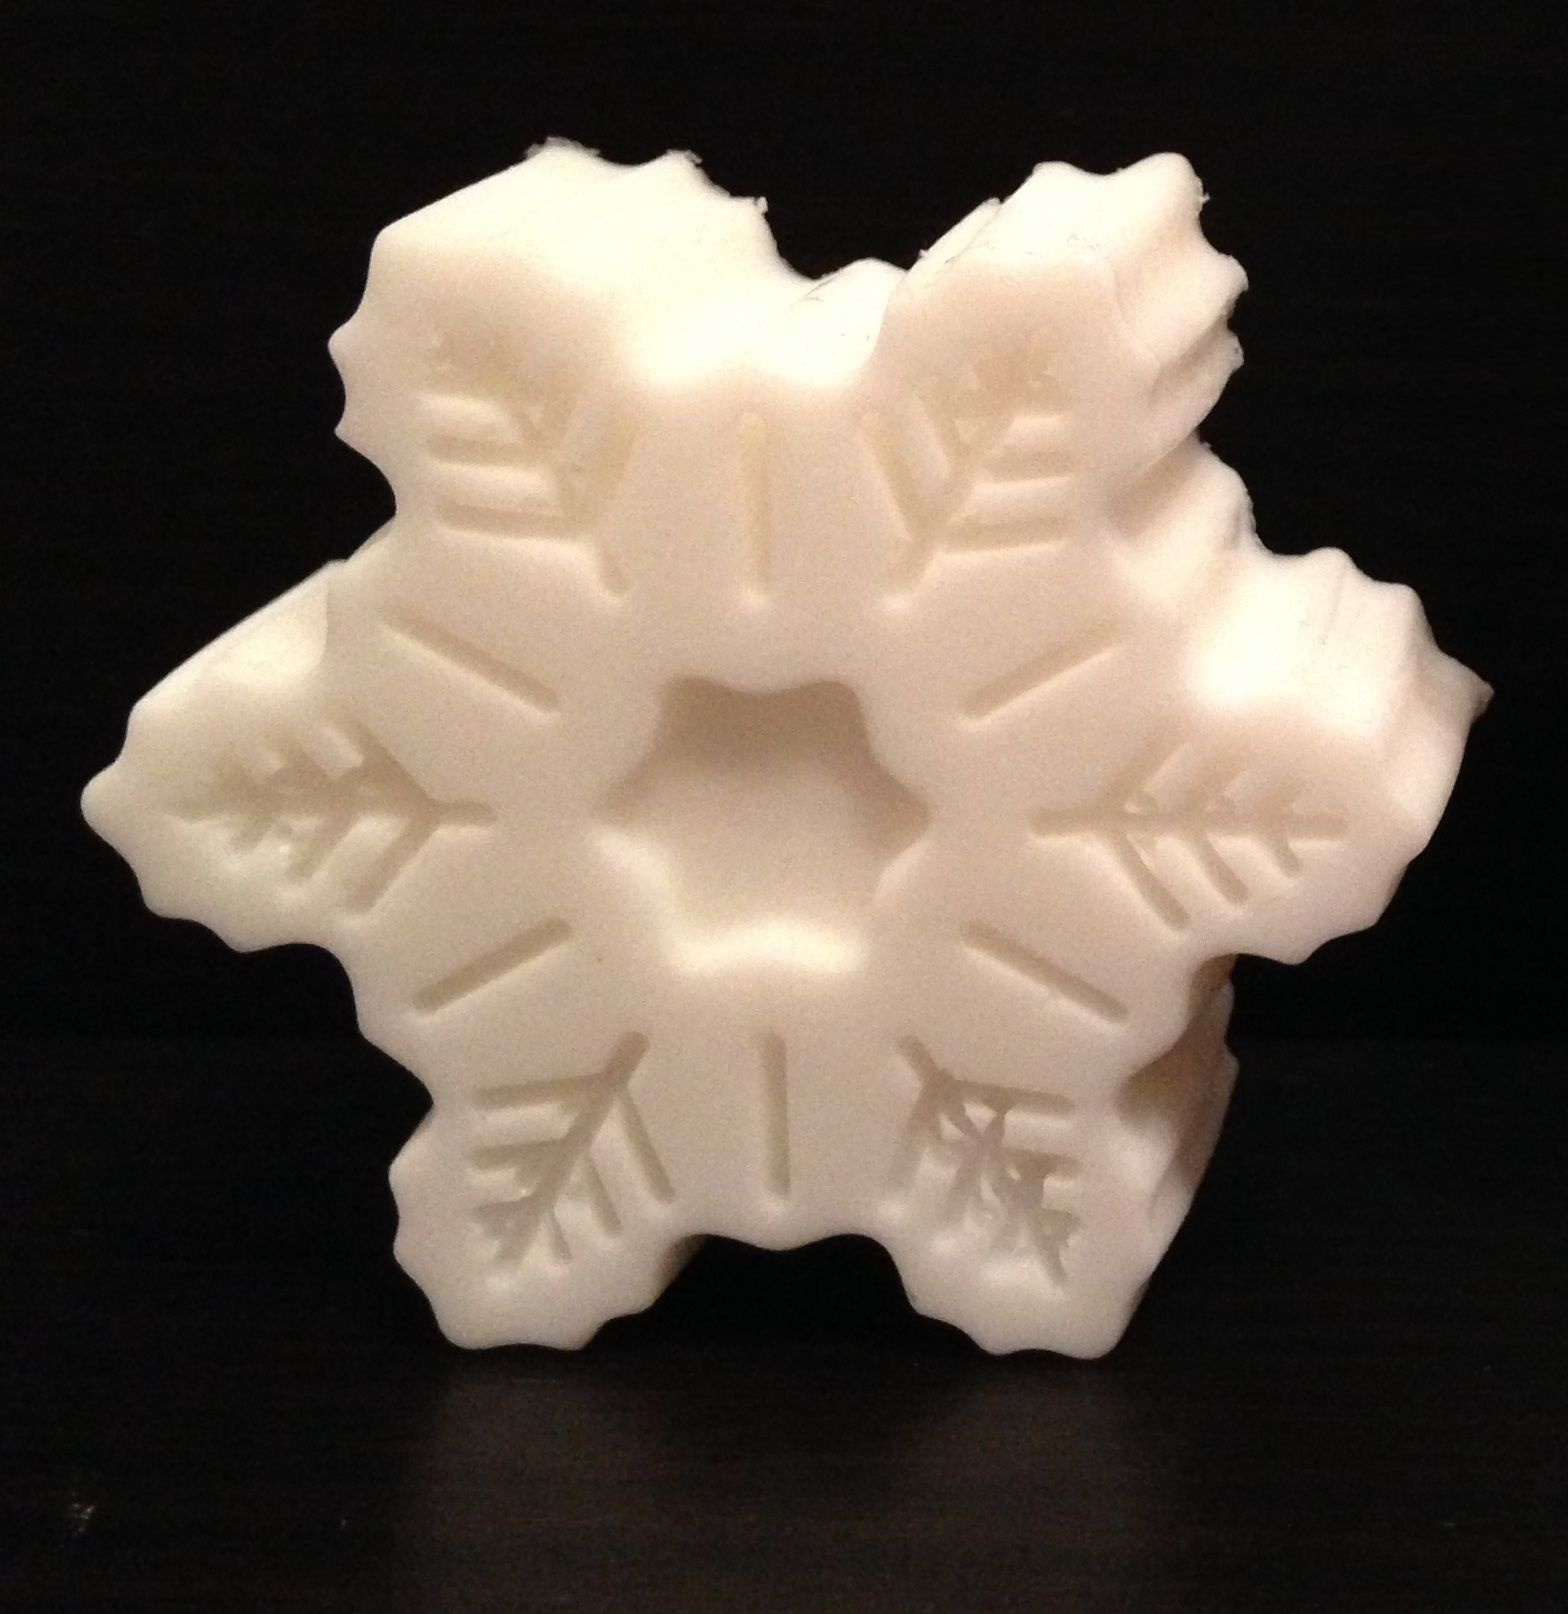 Peppermint flavoured Goat's Milk Soap in a Snowflake shape.